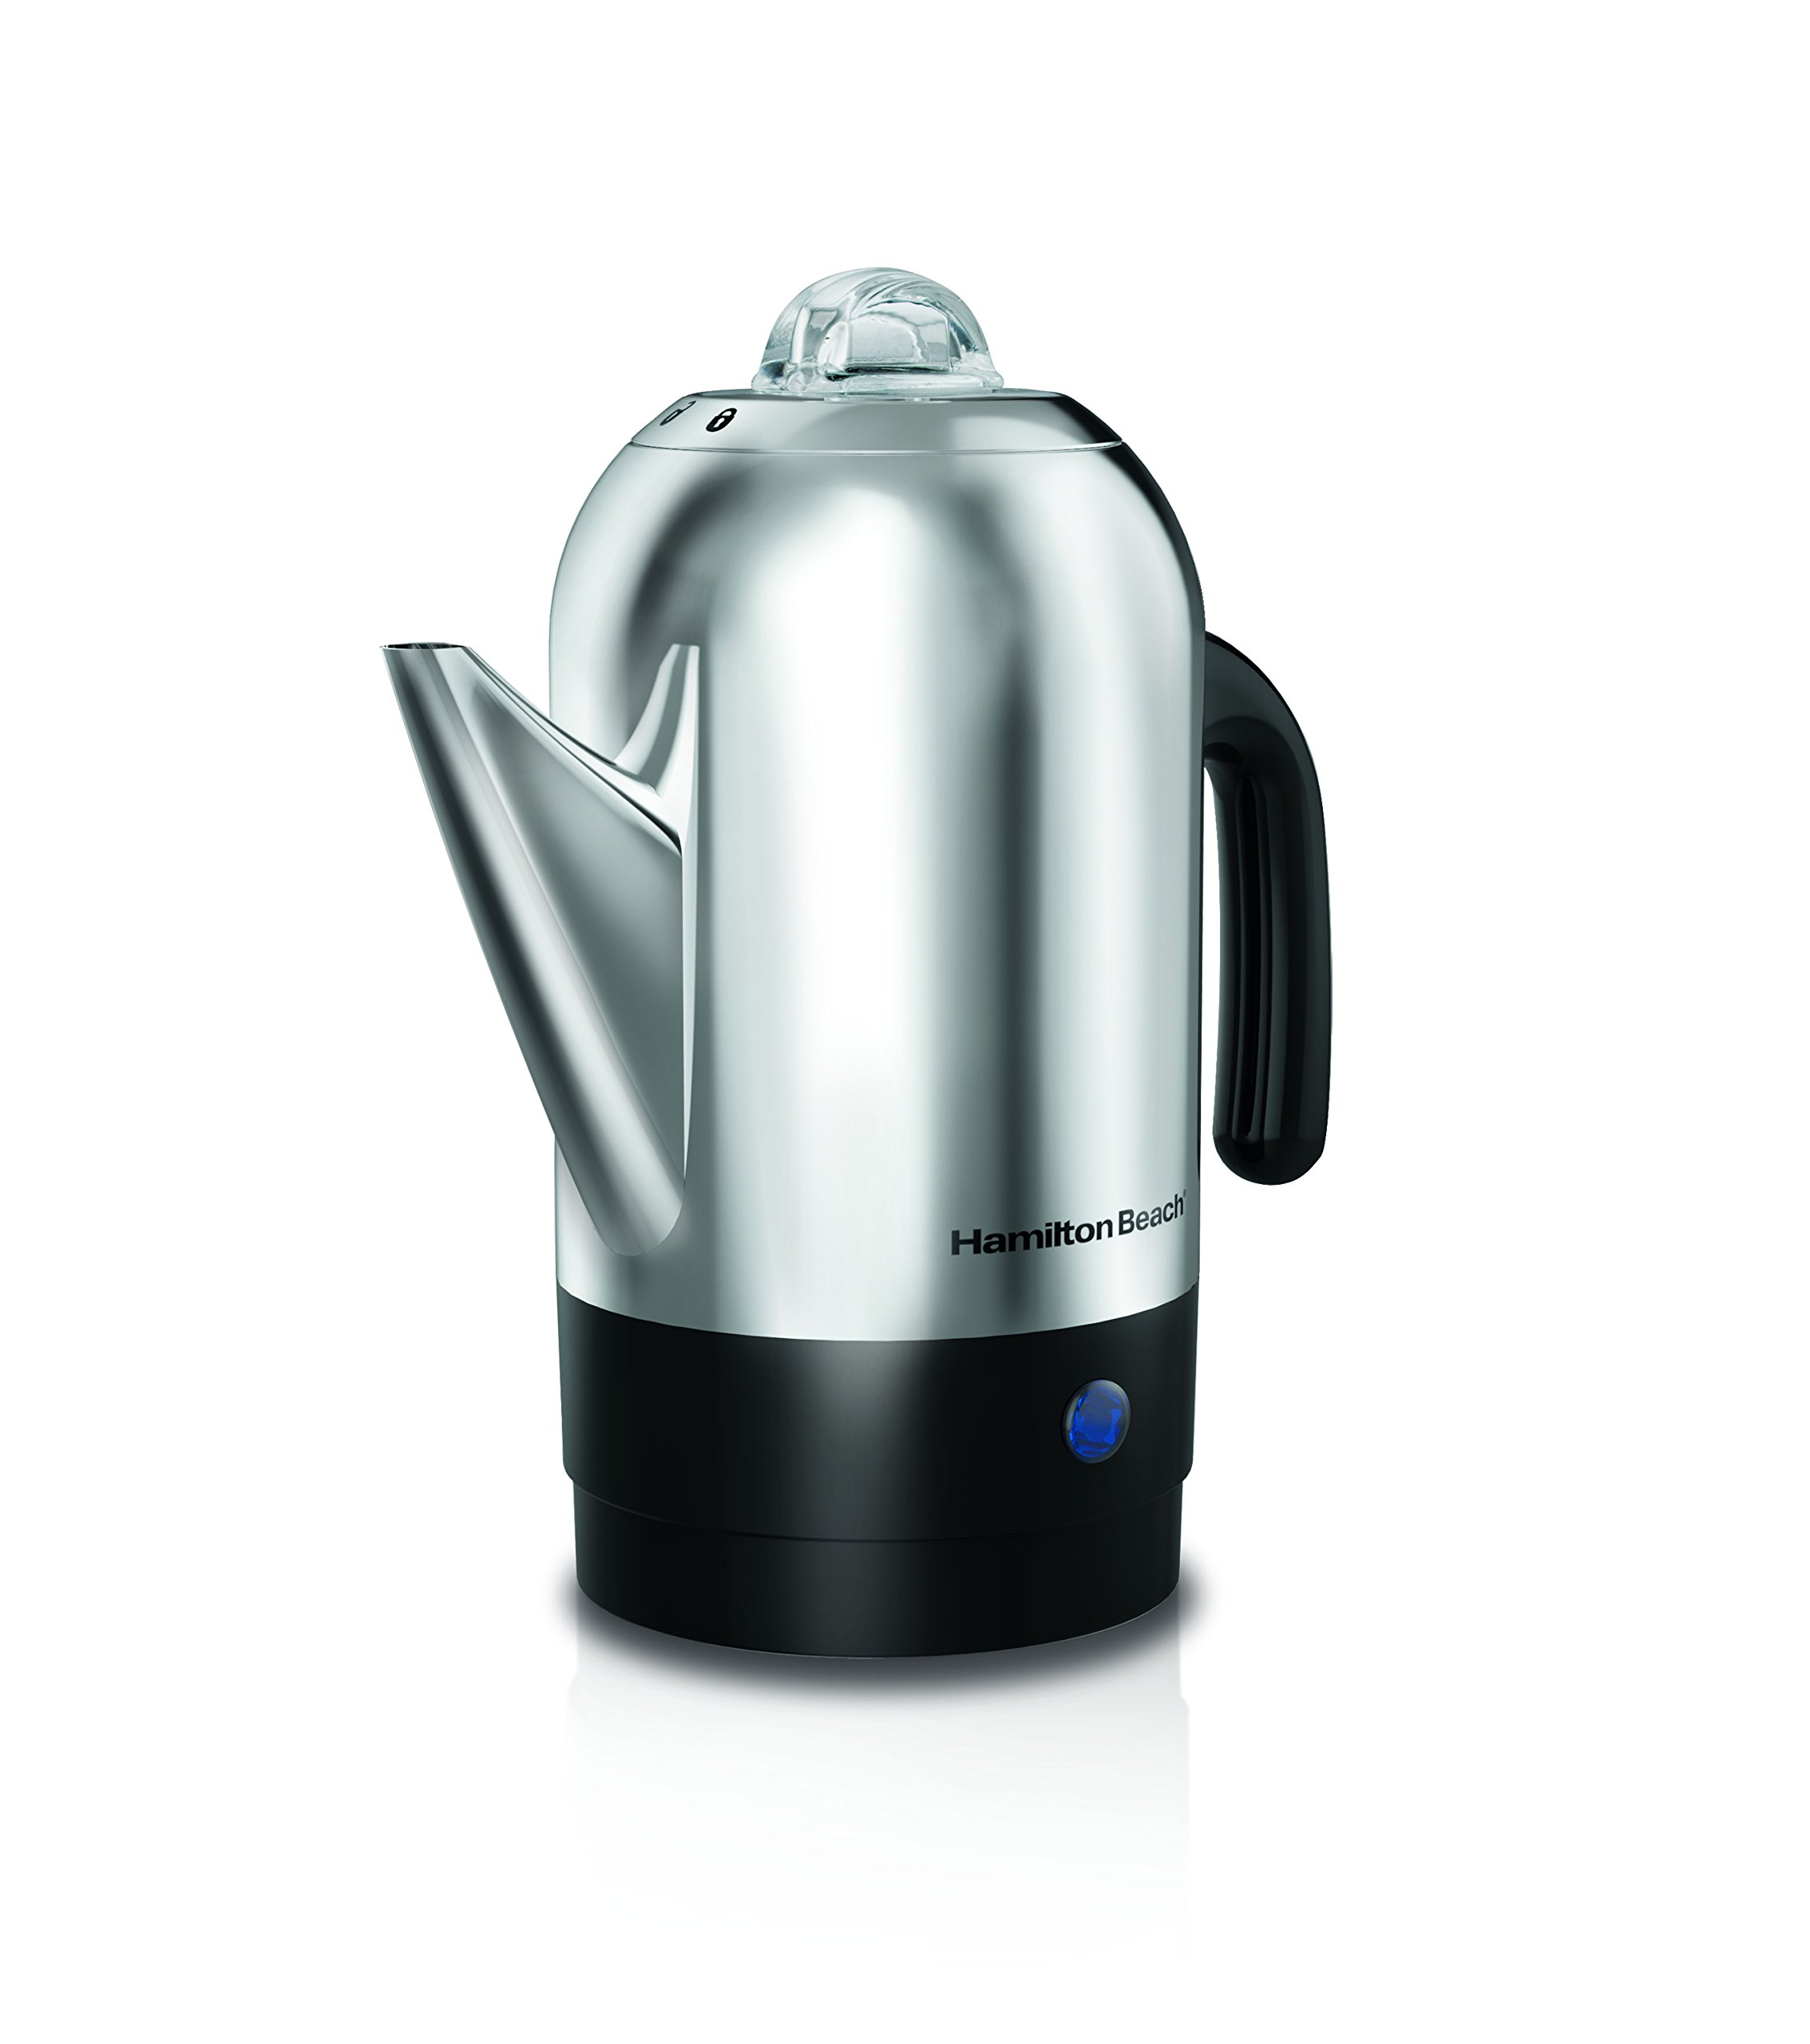 Hamilton Beach 40621R 8 Cup Stainless Steel Percolator, Silver